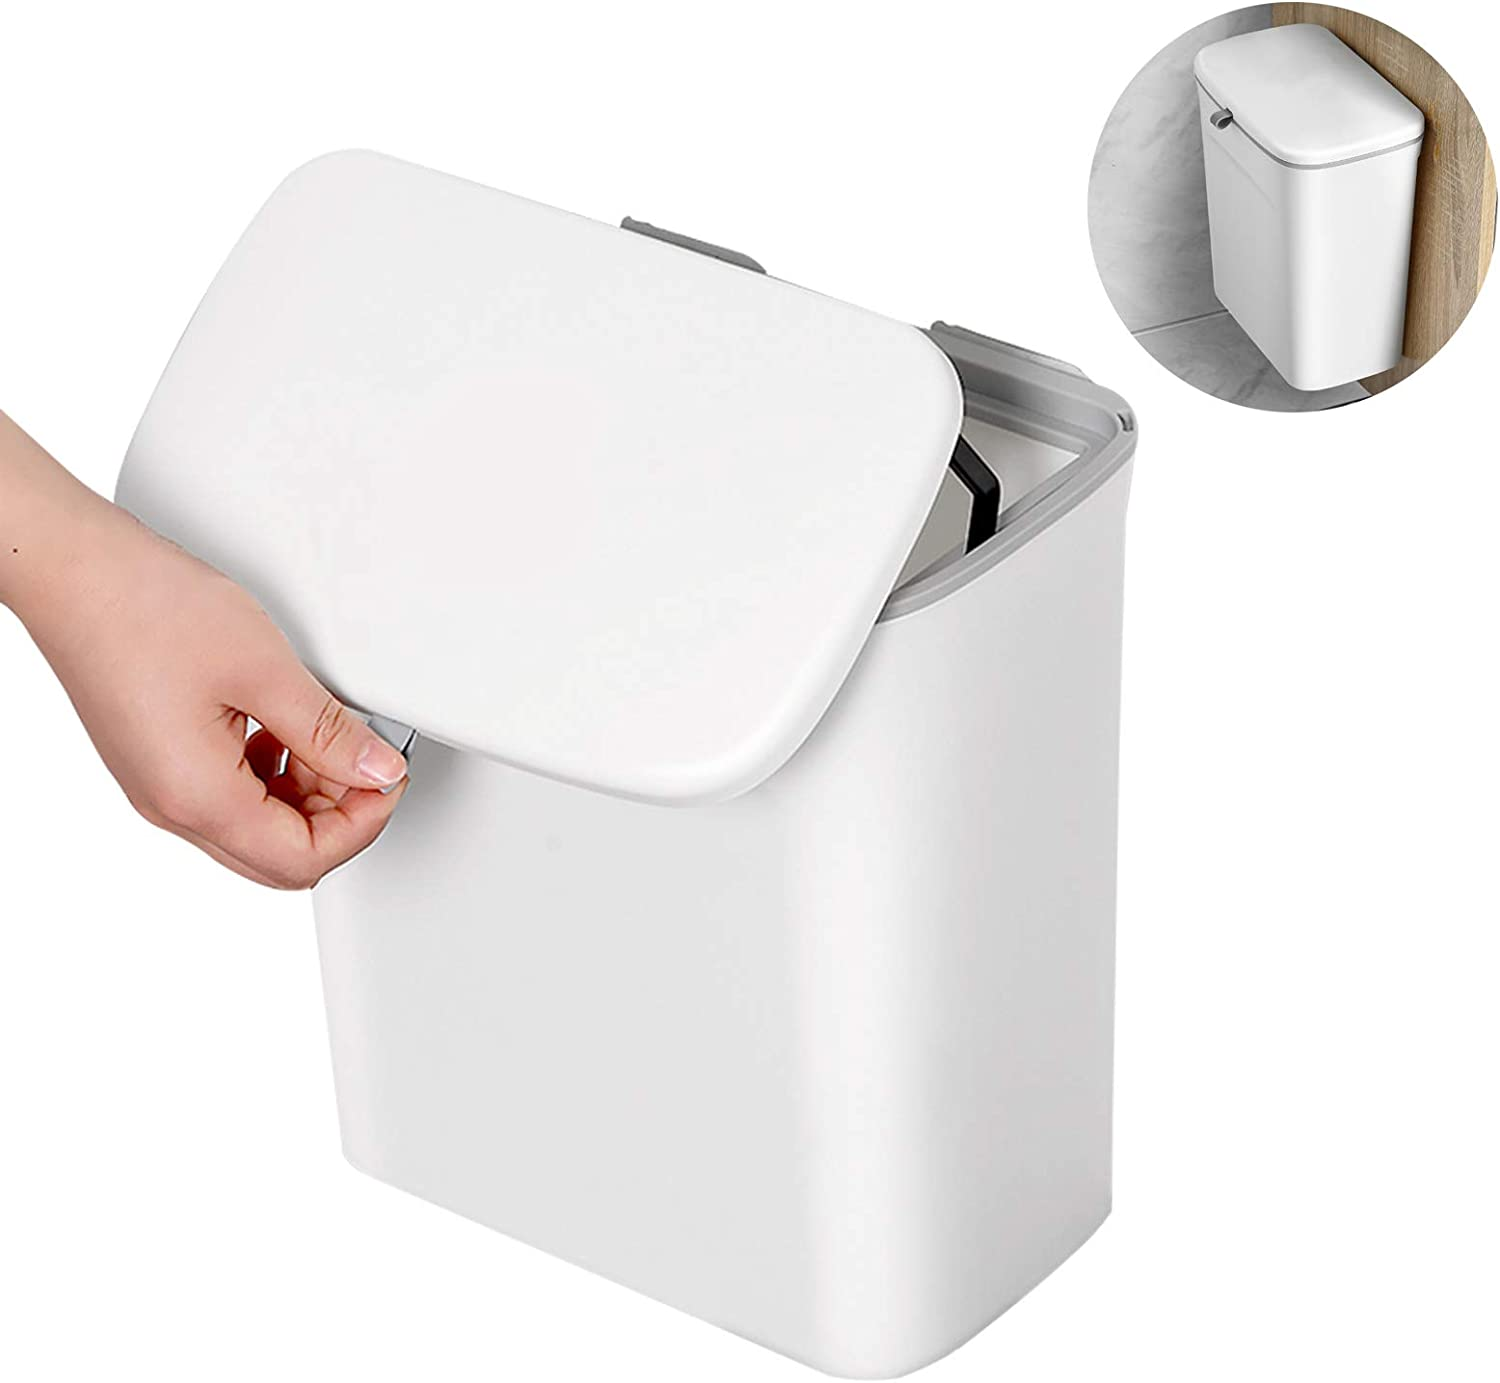 BOOMJOY Hanging Trash Can, Under Sink Trash Can with Slide Lid, Cabinet Door Mounted Compost Bin for Kitchen, Car, Bathroom, Bedroom, Office, Laundry Rooms, Baby Diaper Pail, 2.3Gallon, White